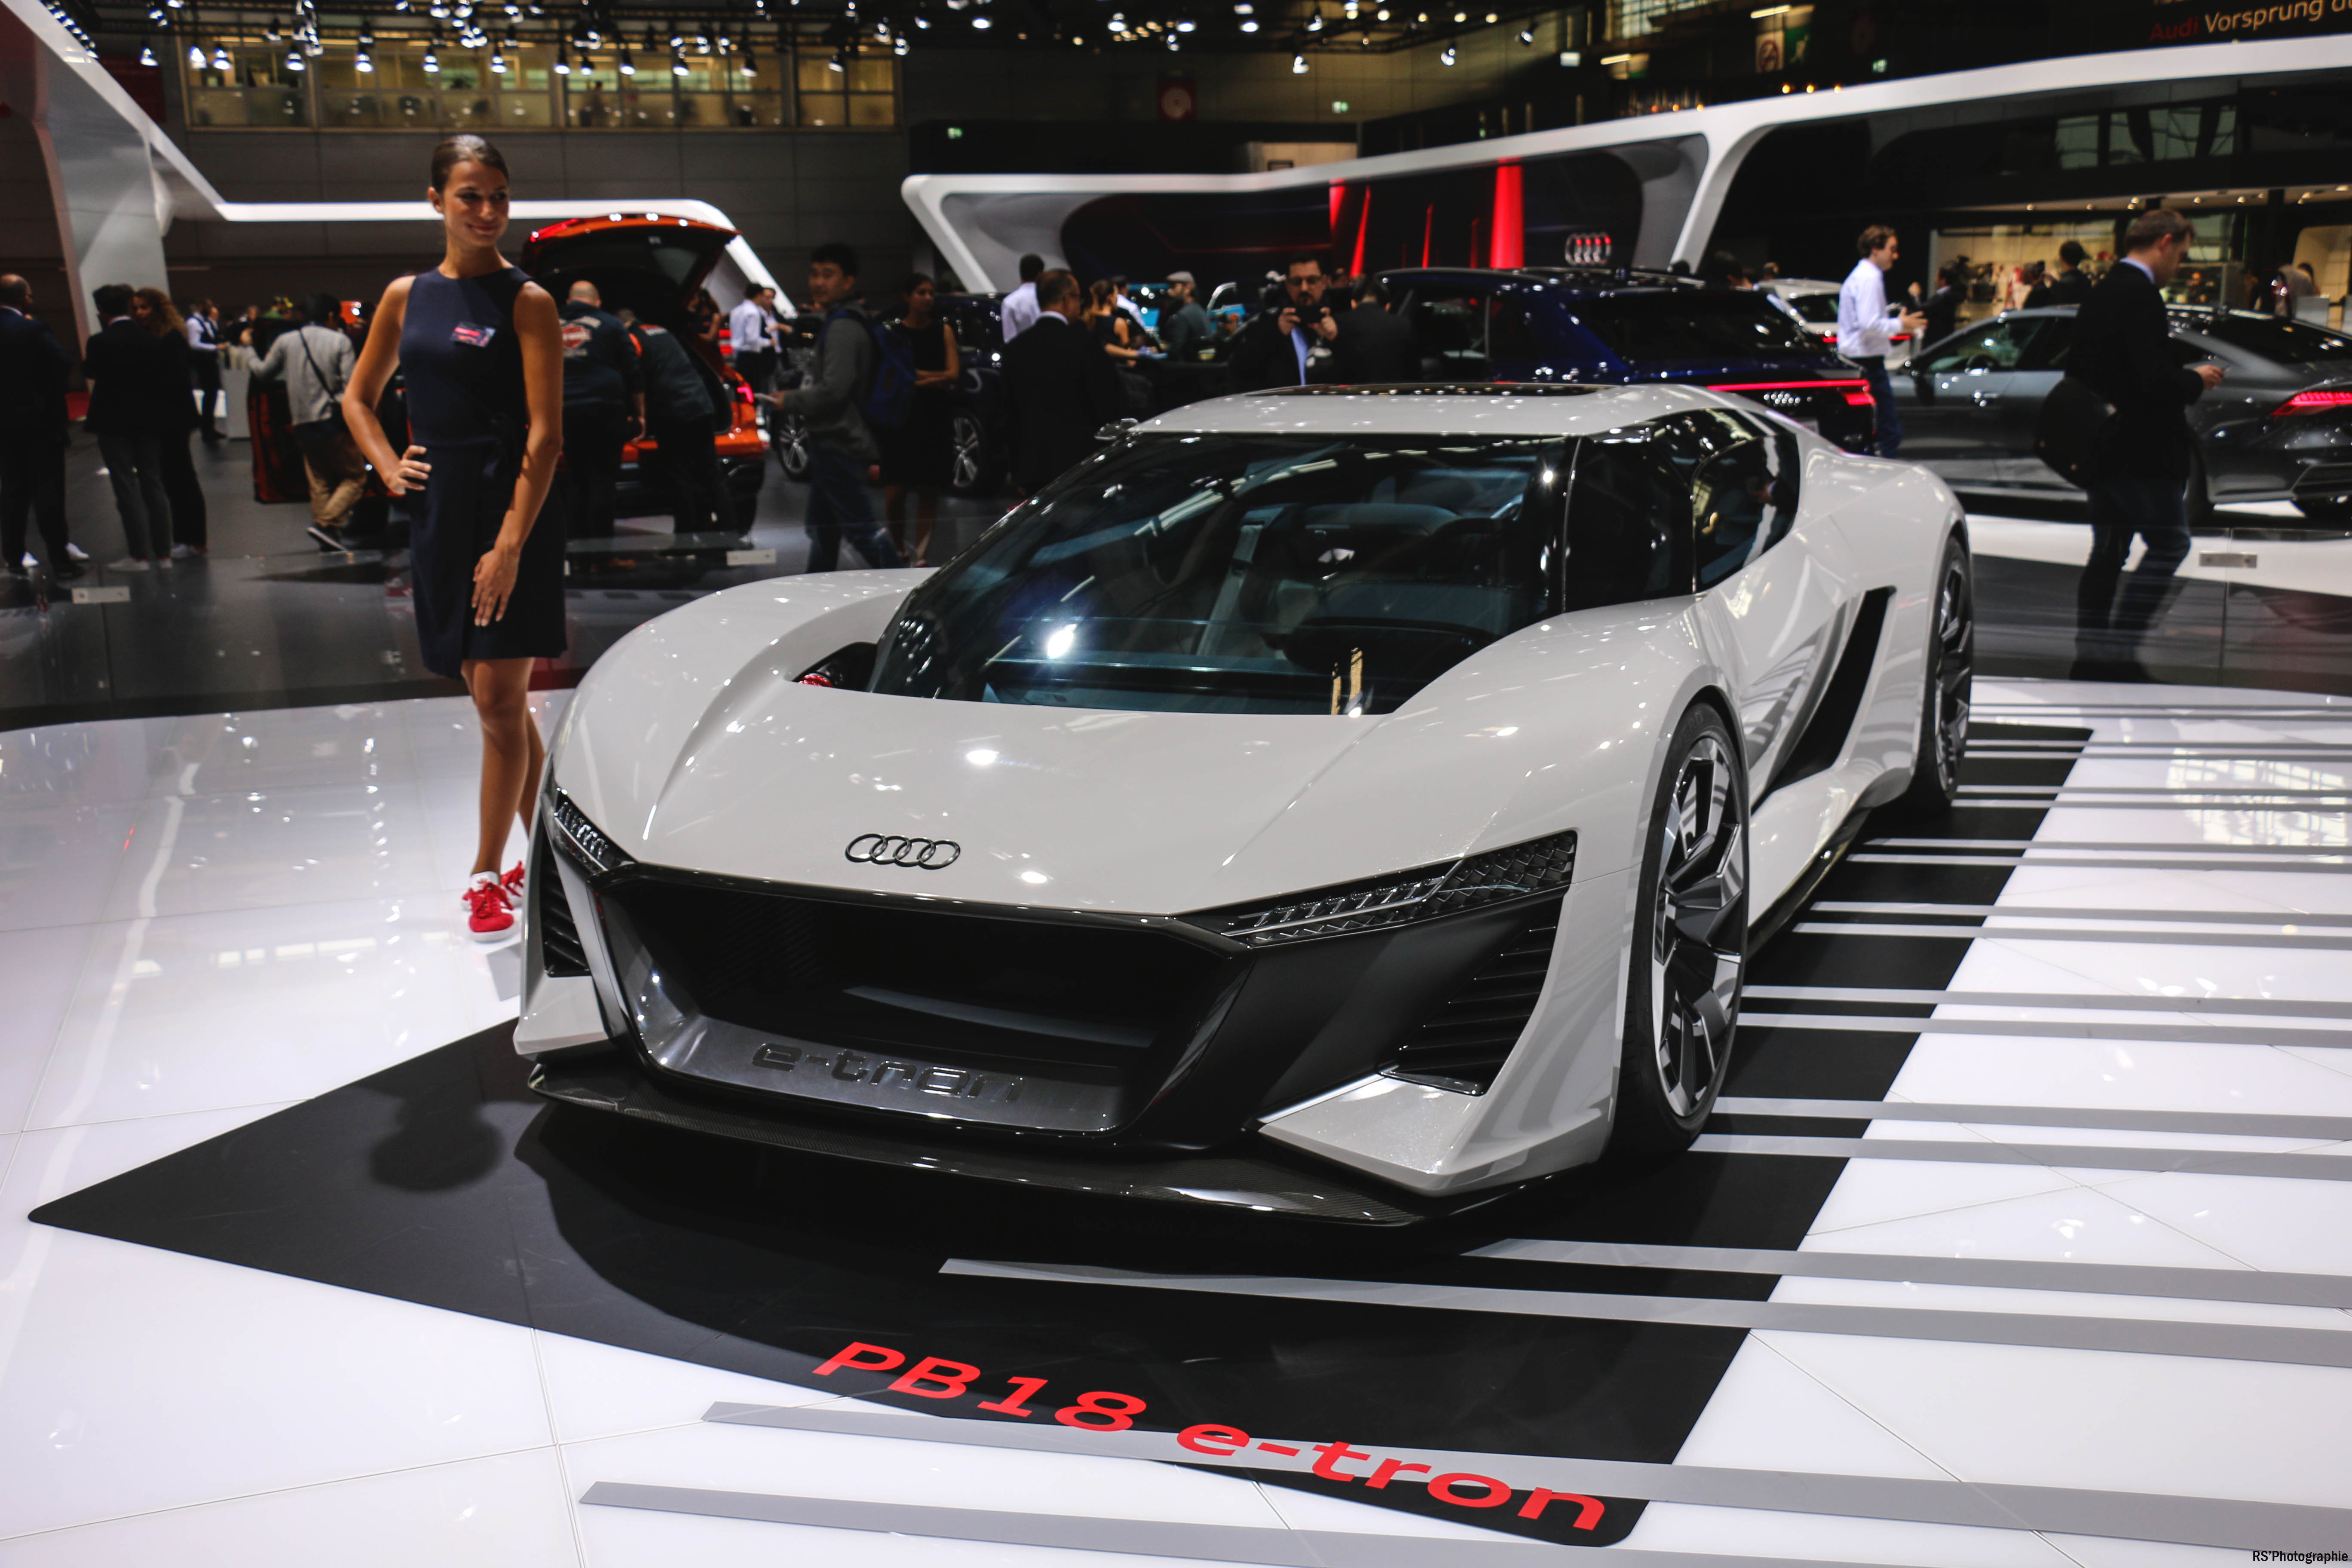 Audi PB18 e-tron - front - Paris Motor Show - 2018 - Mondial Auto - photo by Arnaud Demasier RS Photographie